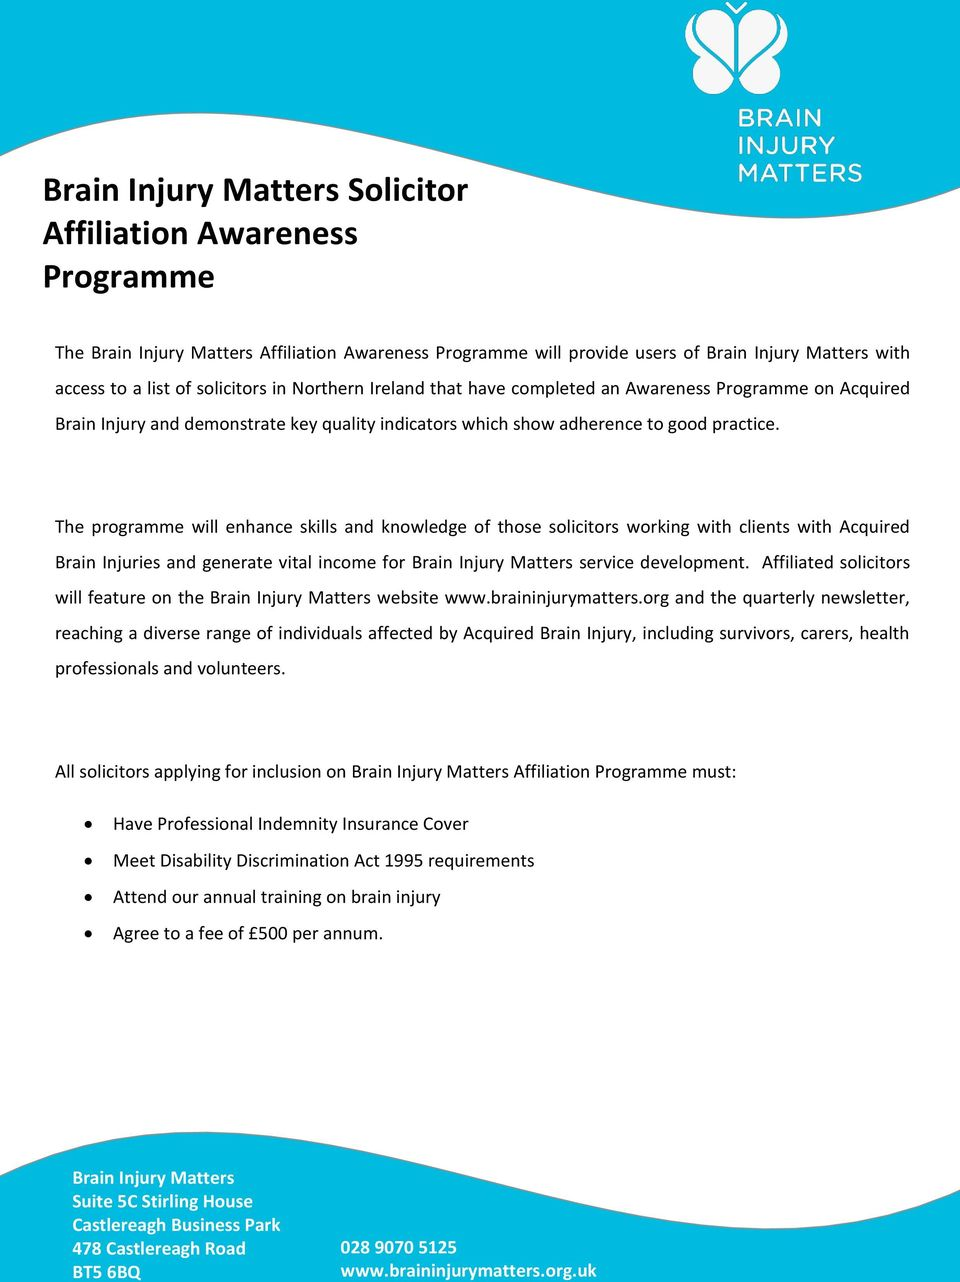 Affiliated solicitors will feature on the website www.braininjurymatters.